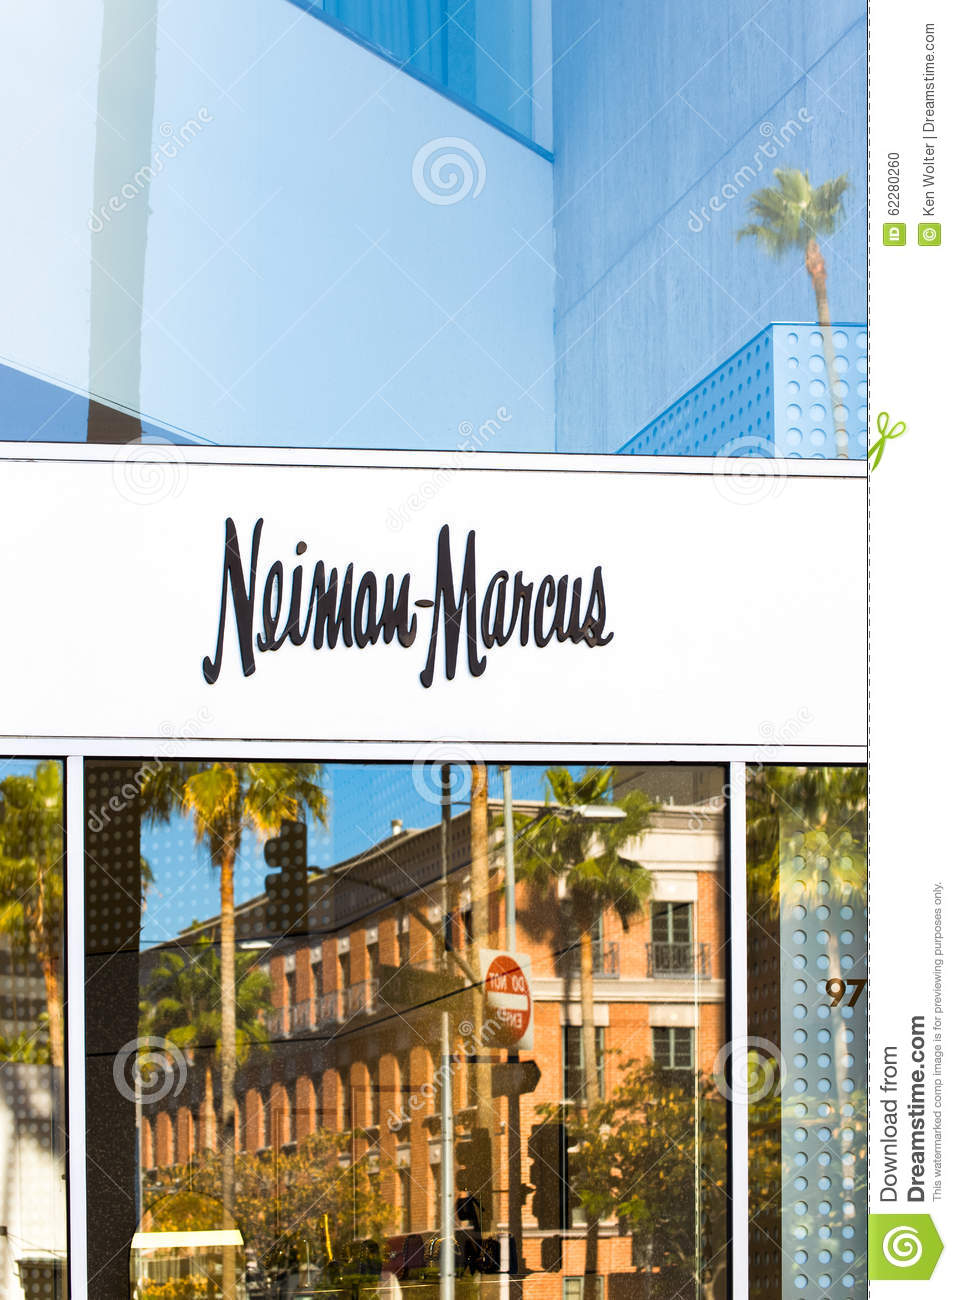 Neiman Marcus Store Exterior And Logo Editorial Image - Image of